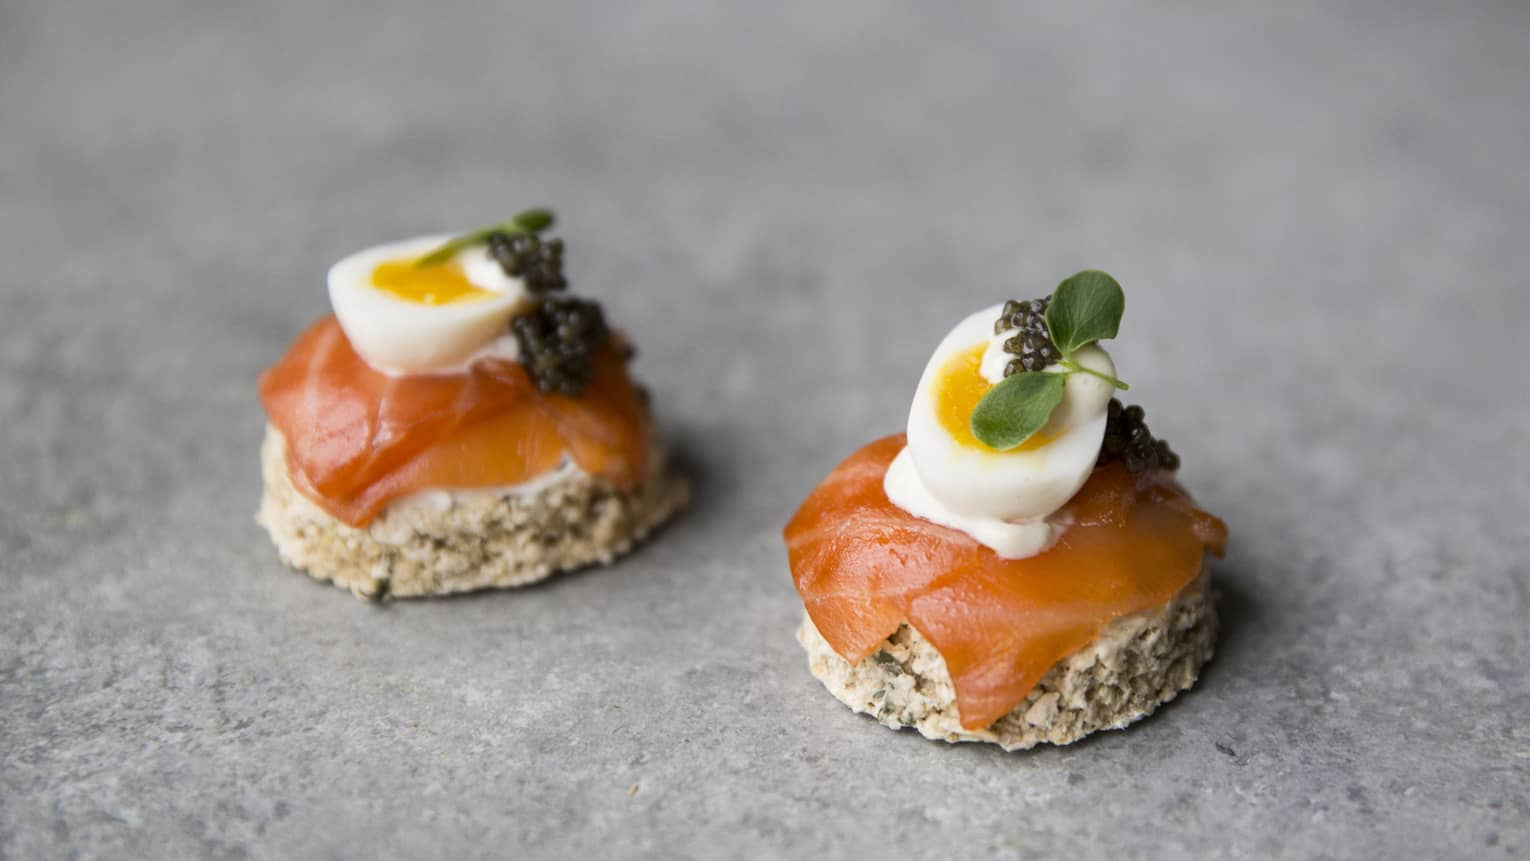 Toast rounds with smoked salmon, soft-cooked quail egg, caviar, microgreens garnish